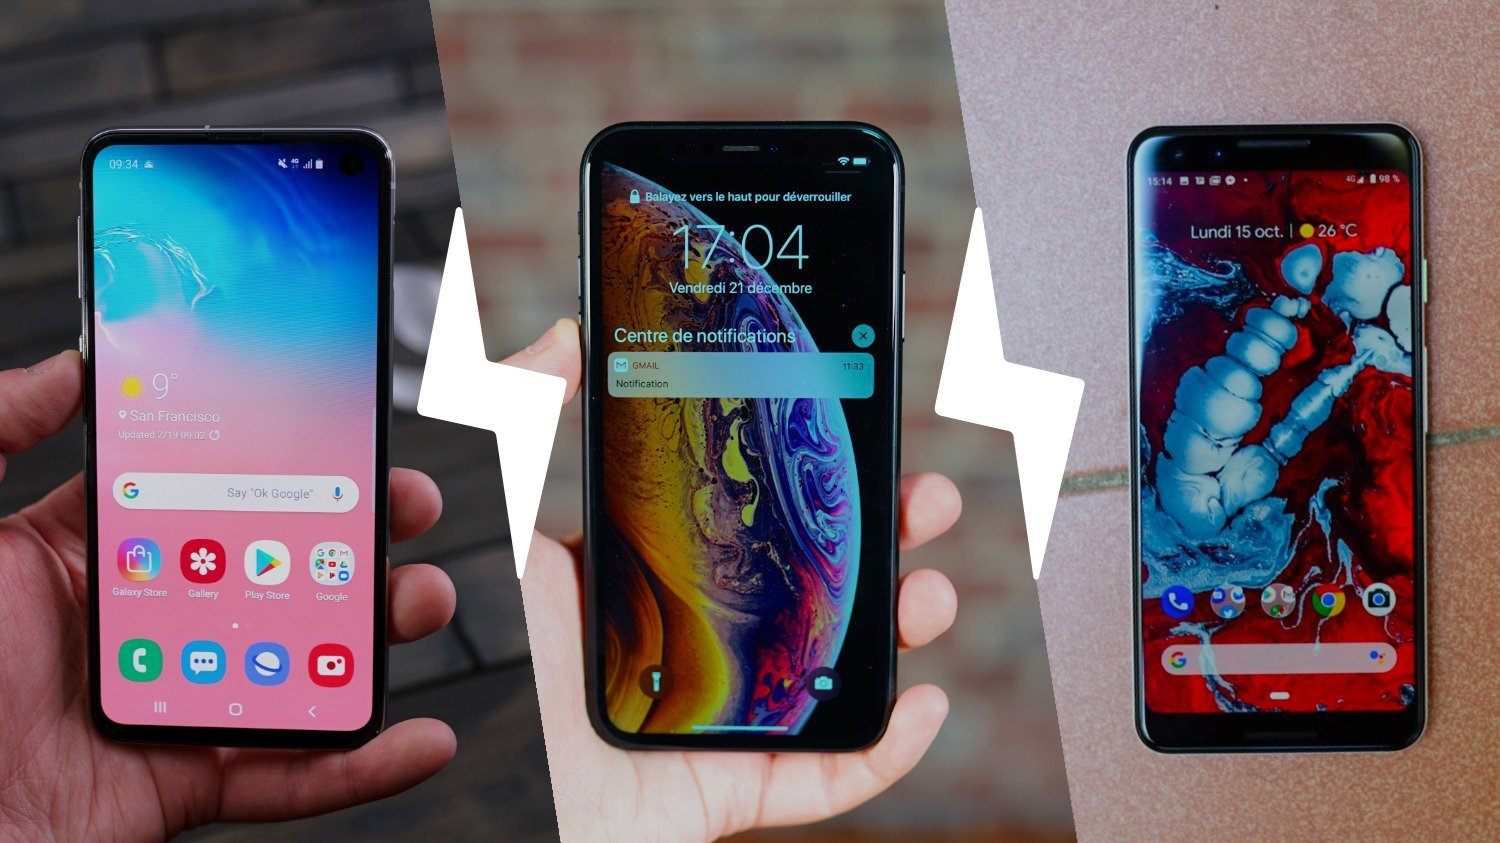 Samsung Galaxy S10e vs Apple iPhone XR vs Google Pixel 3 : comparatif du nouveau haut de gamme